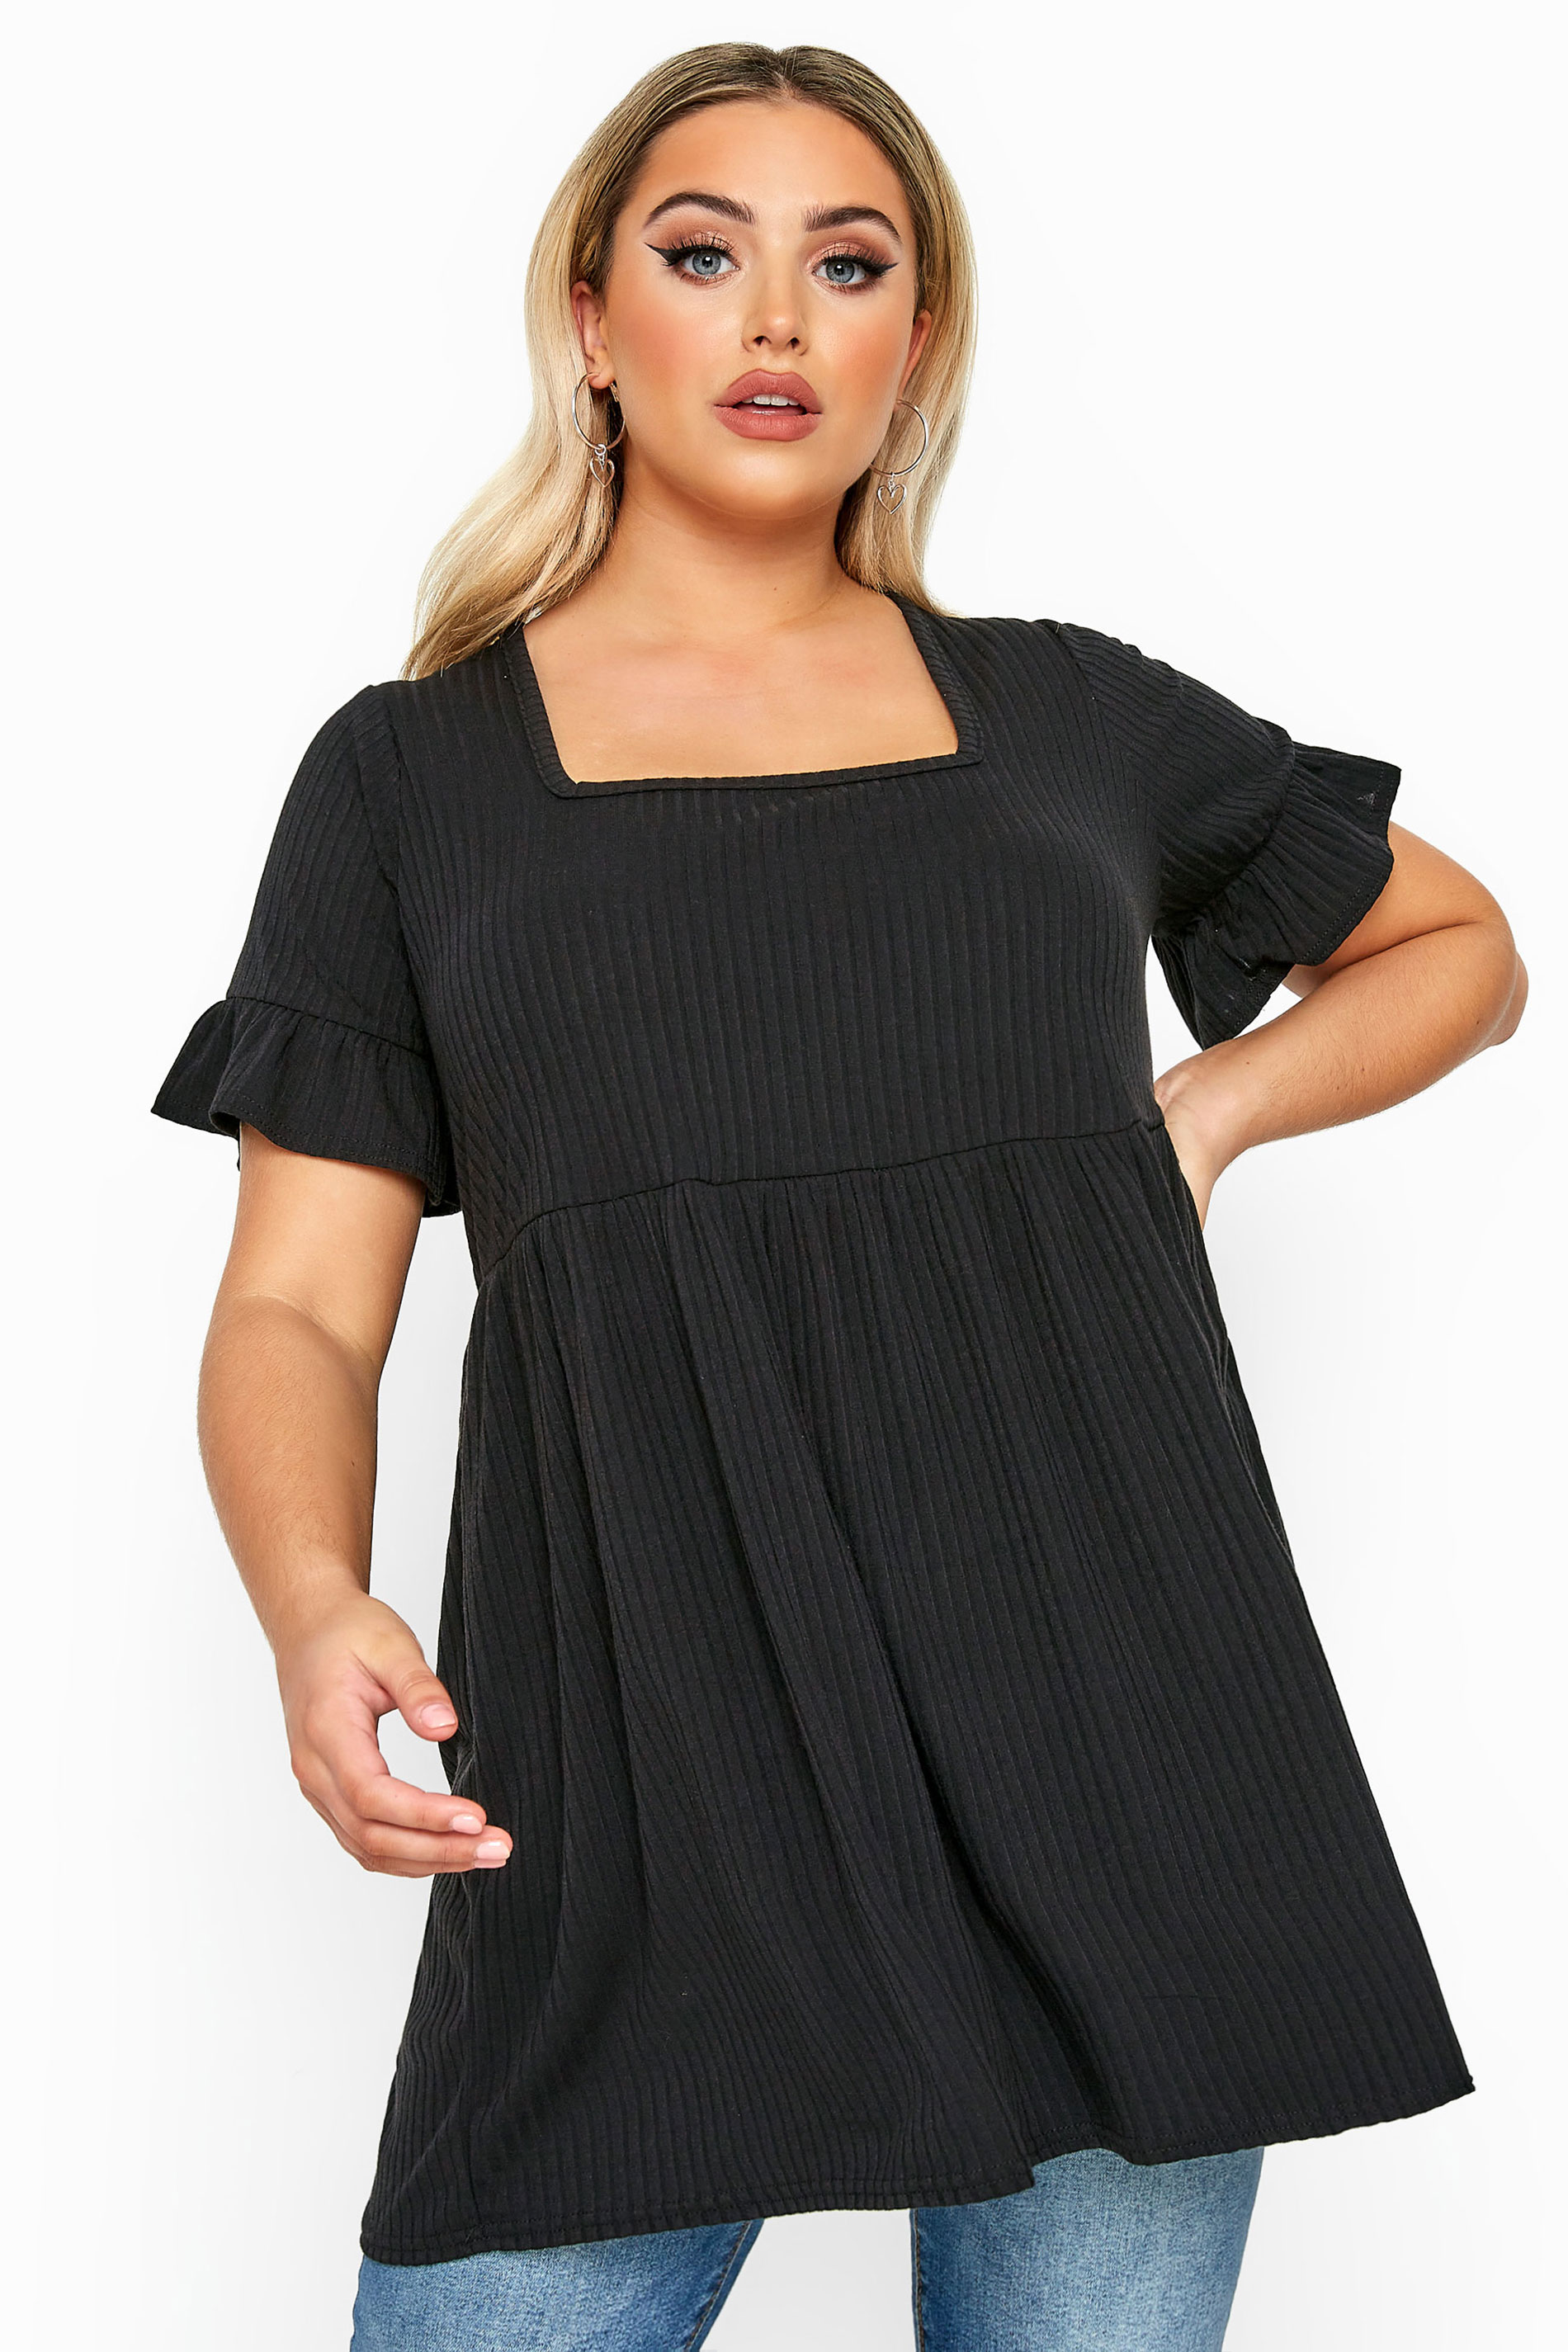 LIMITED COLLECTION Black Ribbed Square Neck Smock Top